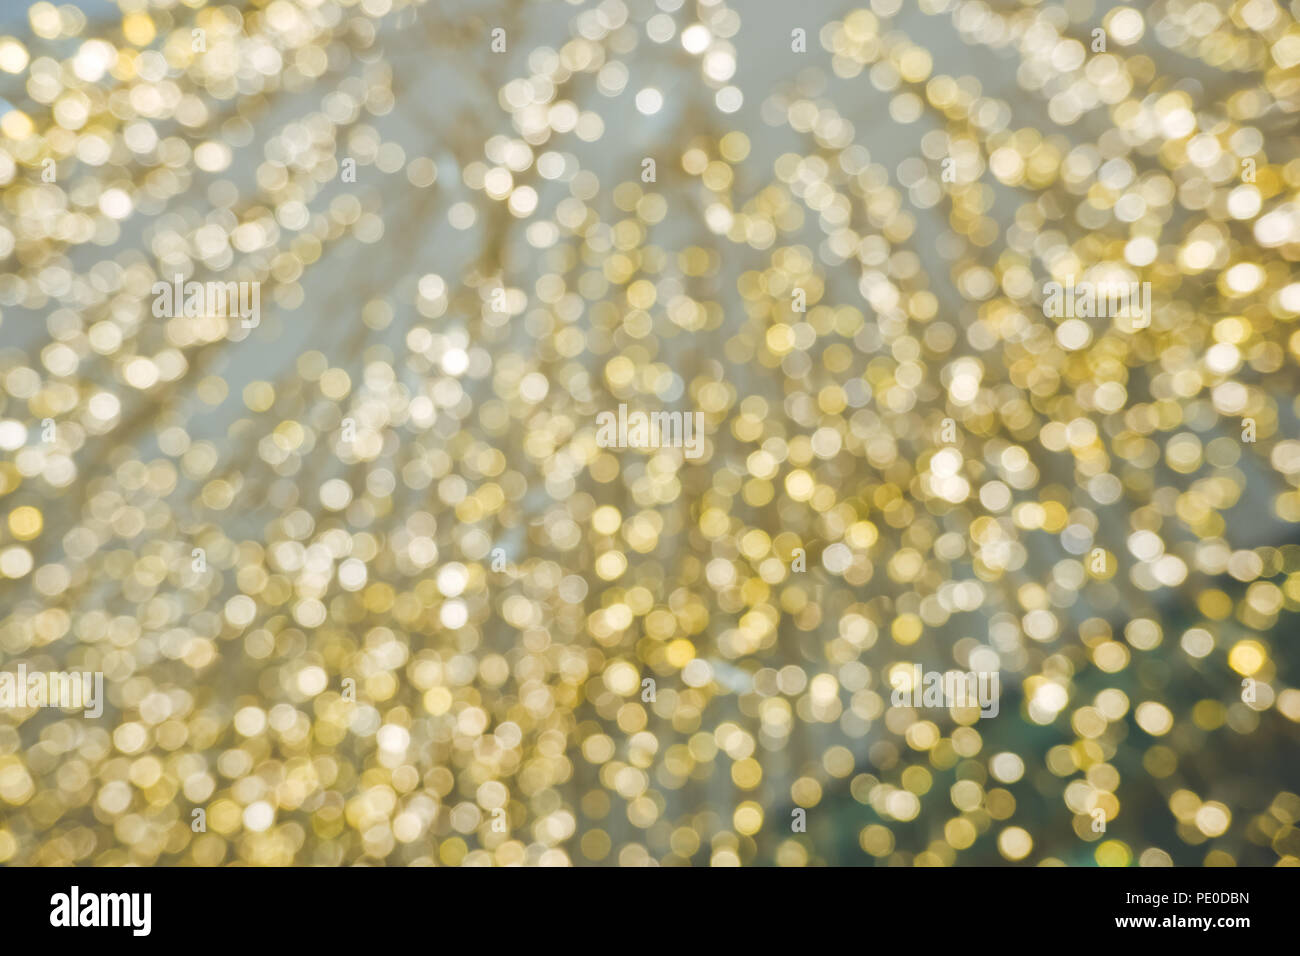 Abstract yellow bokeh circles for Christmas background. Royalty high-quality free stock photo of Christmas light overlay background - Stock Image